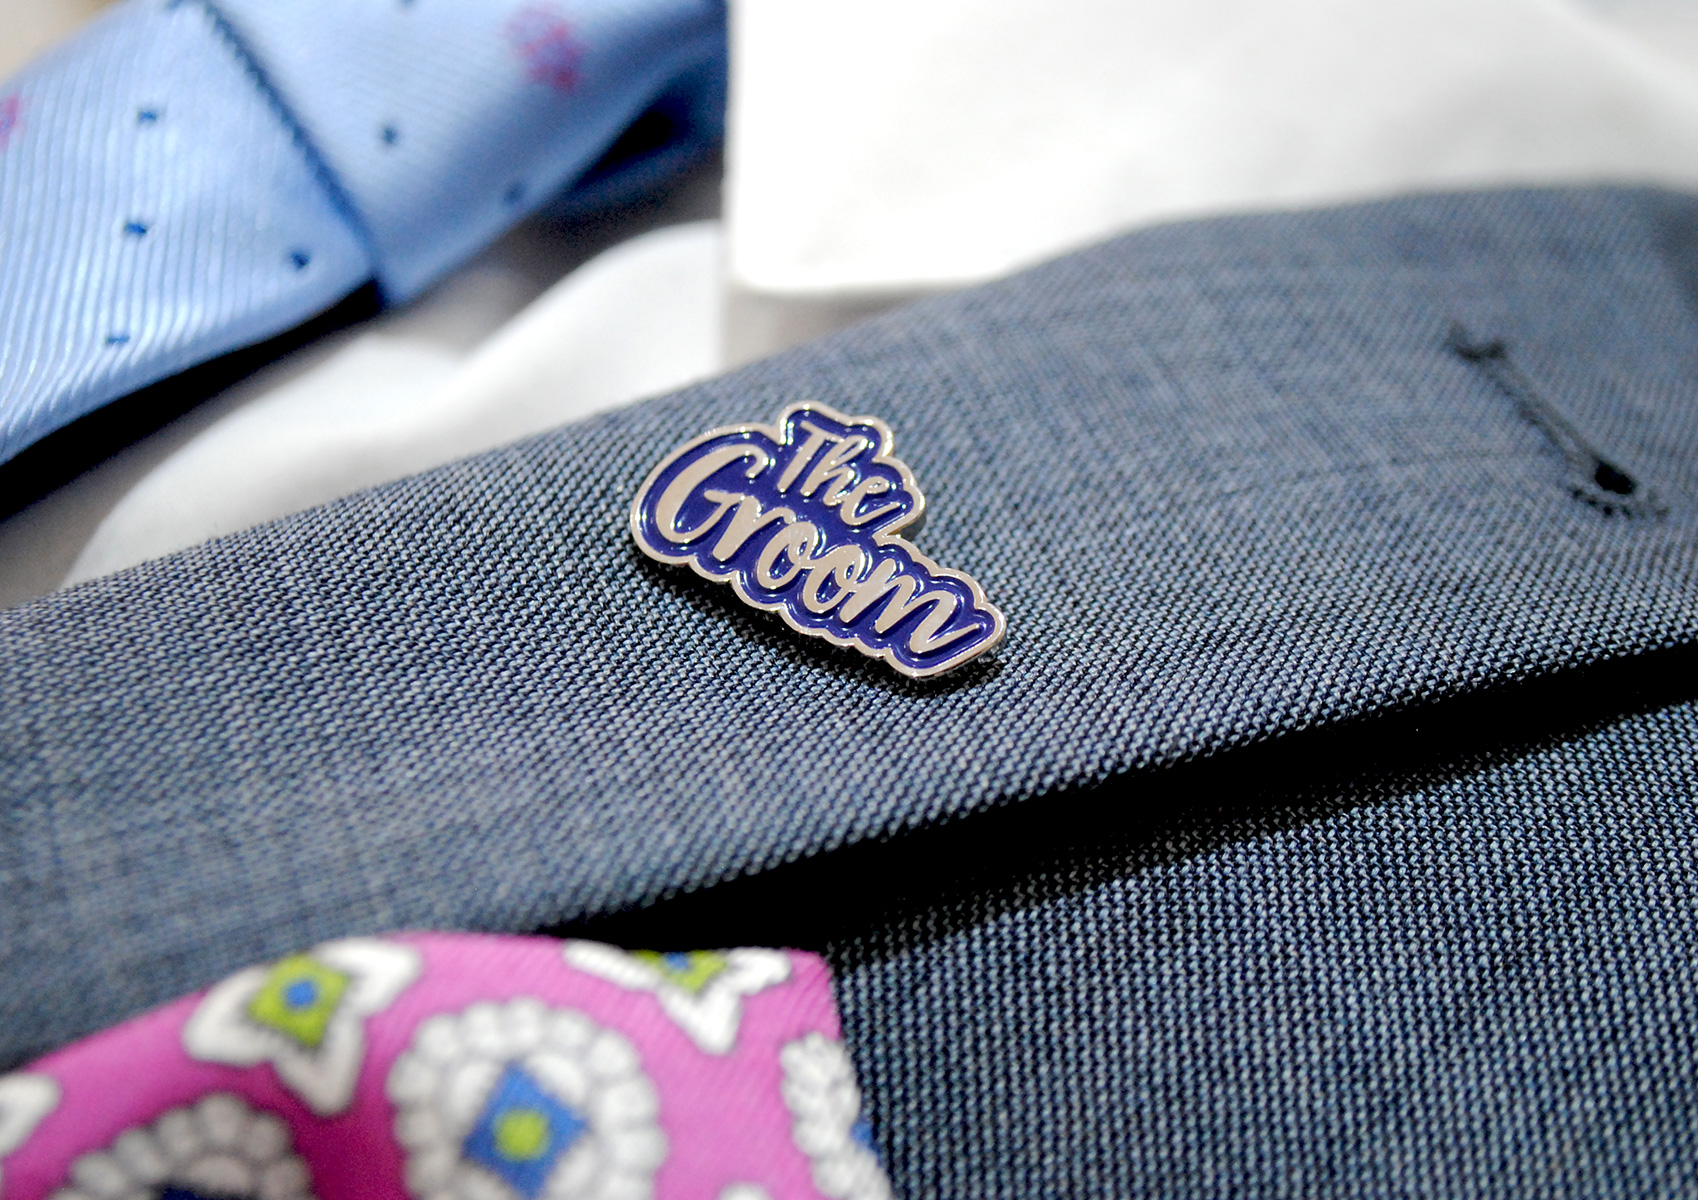 bride groom wedding day enamel lapel pin badge